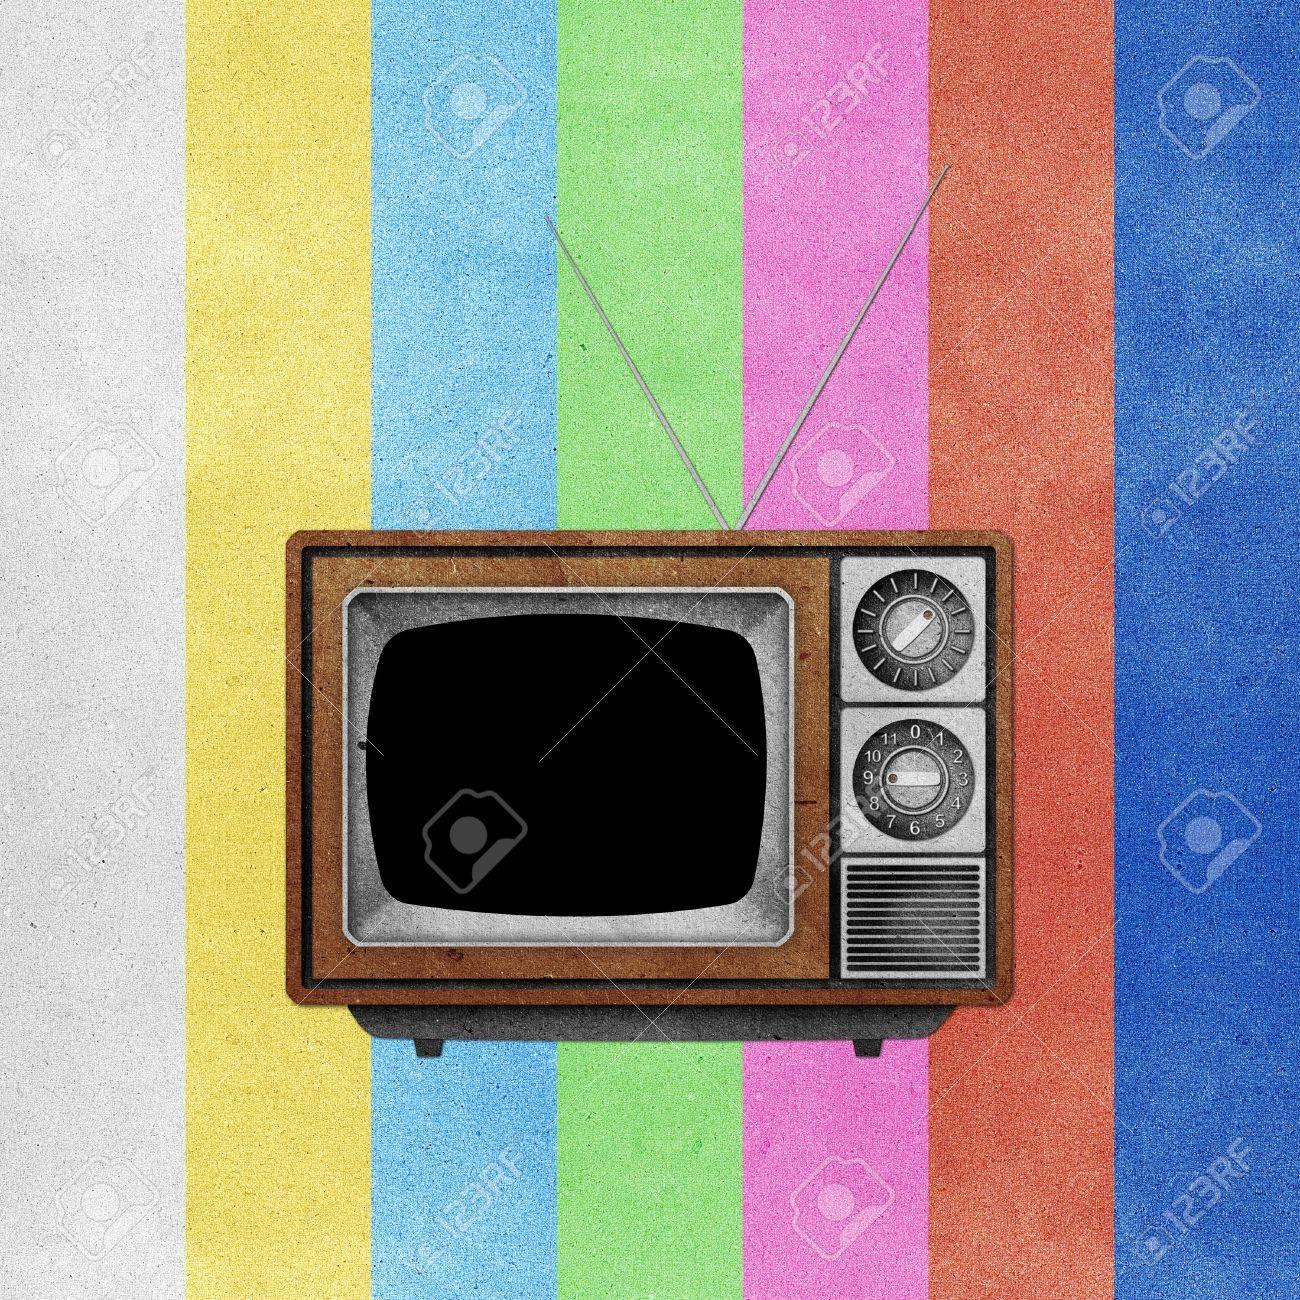 Television ( TV ) icon recycled paper stick on grunge retro screen color background Stock Photo - 10275384